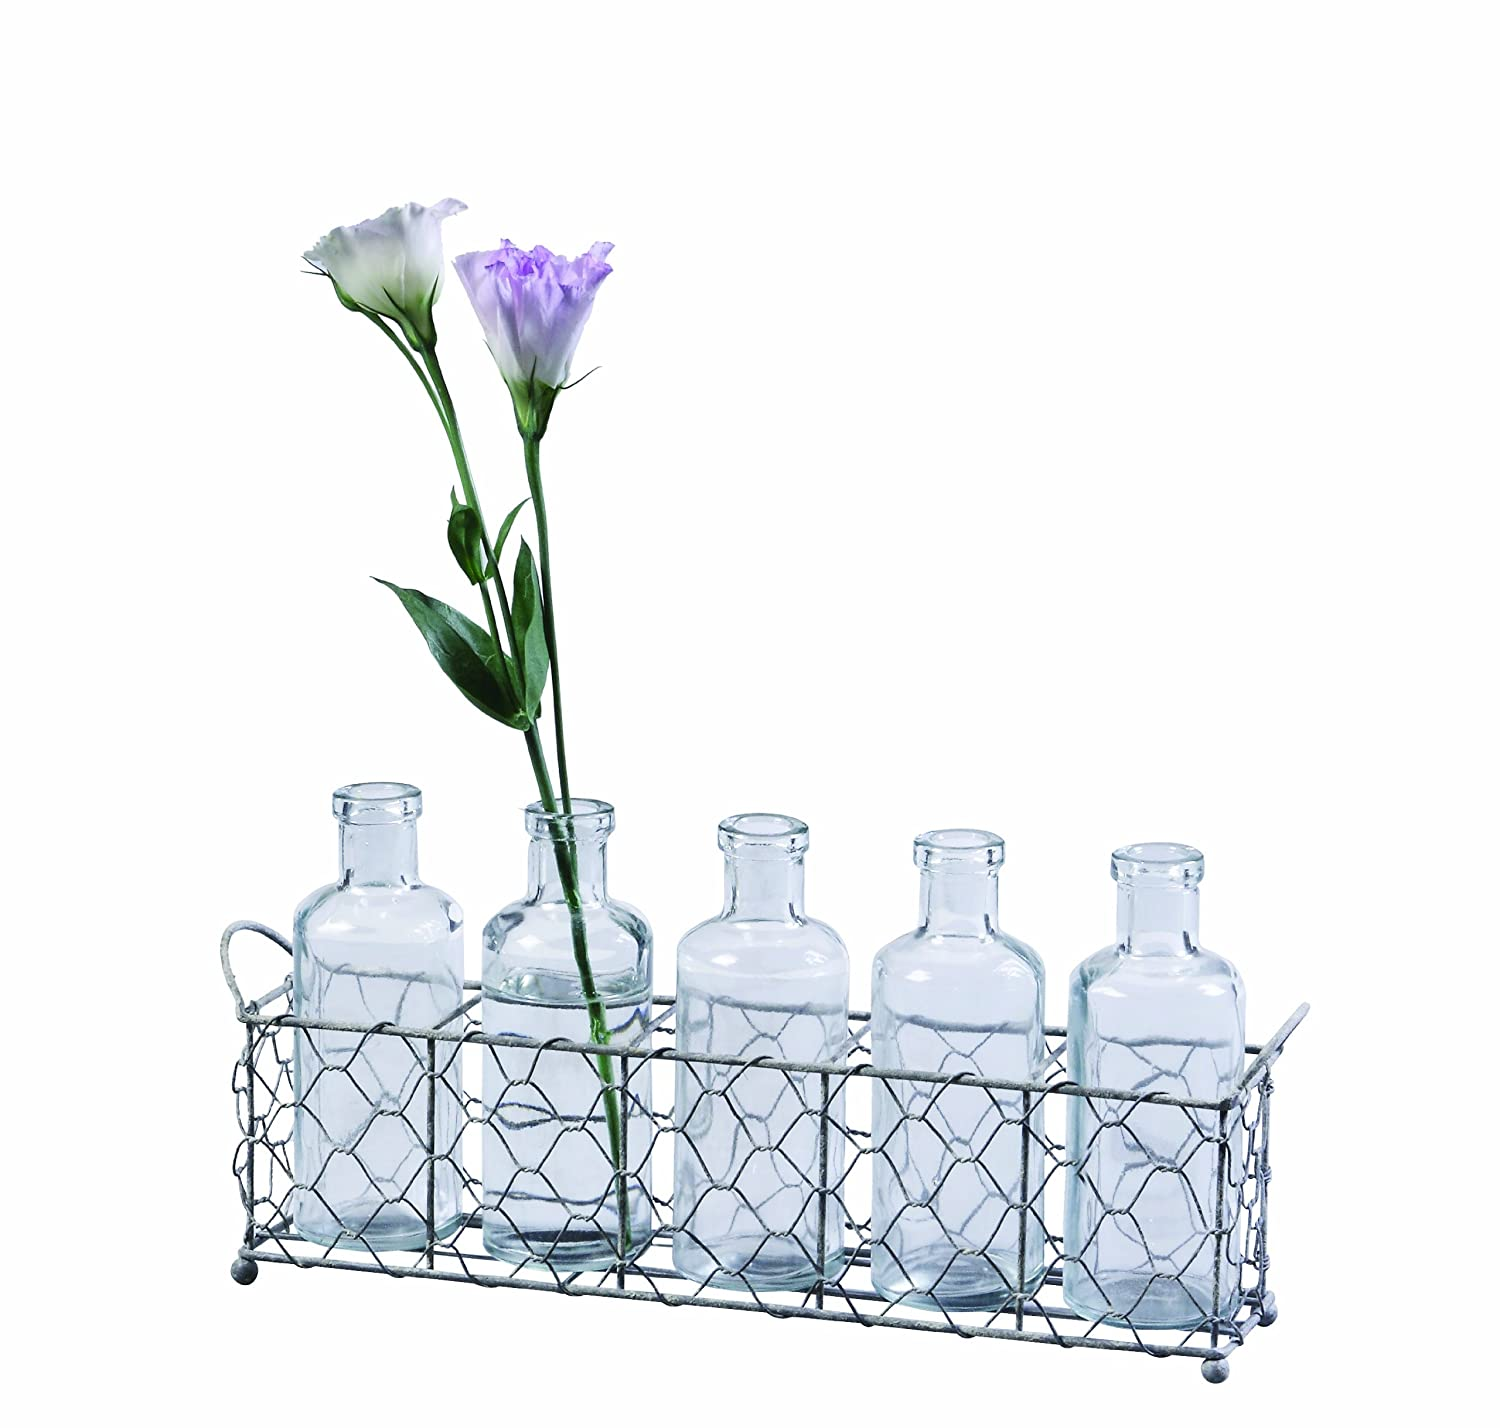 Amazon.com: Creative Co-op Farm Life 12.75-Inch Wire Holder with 5 ...